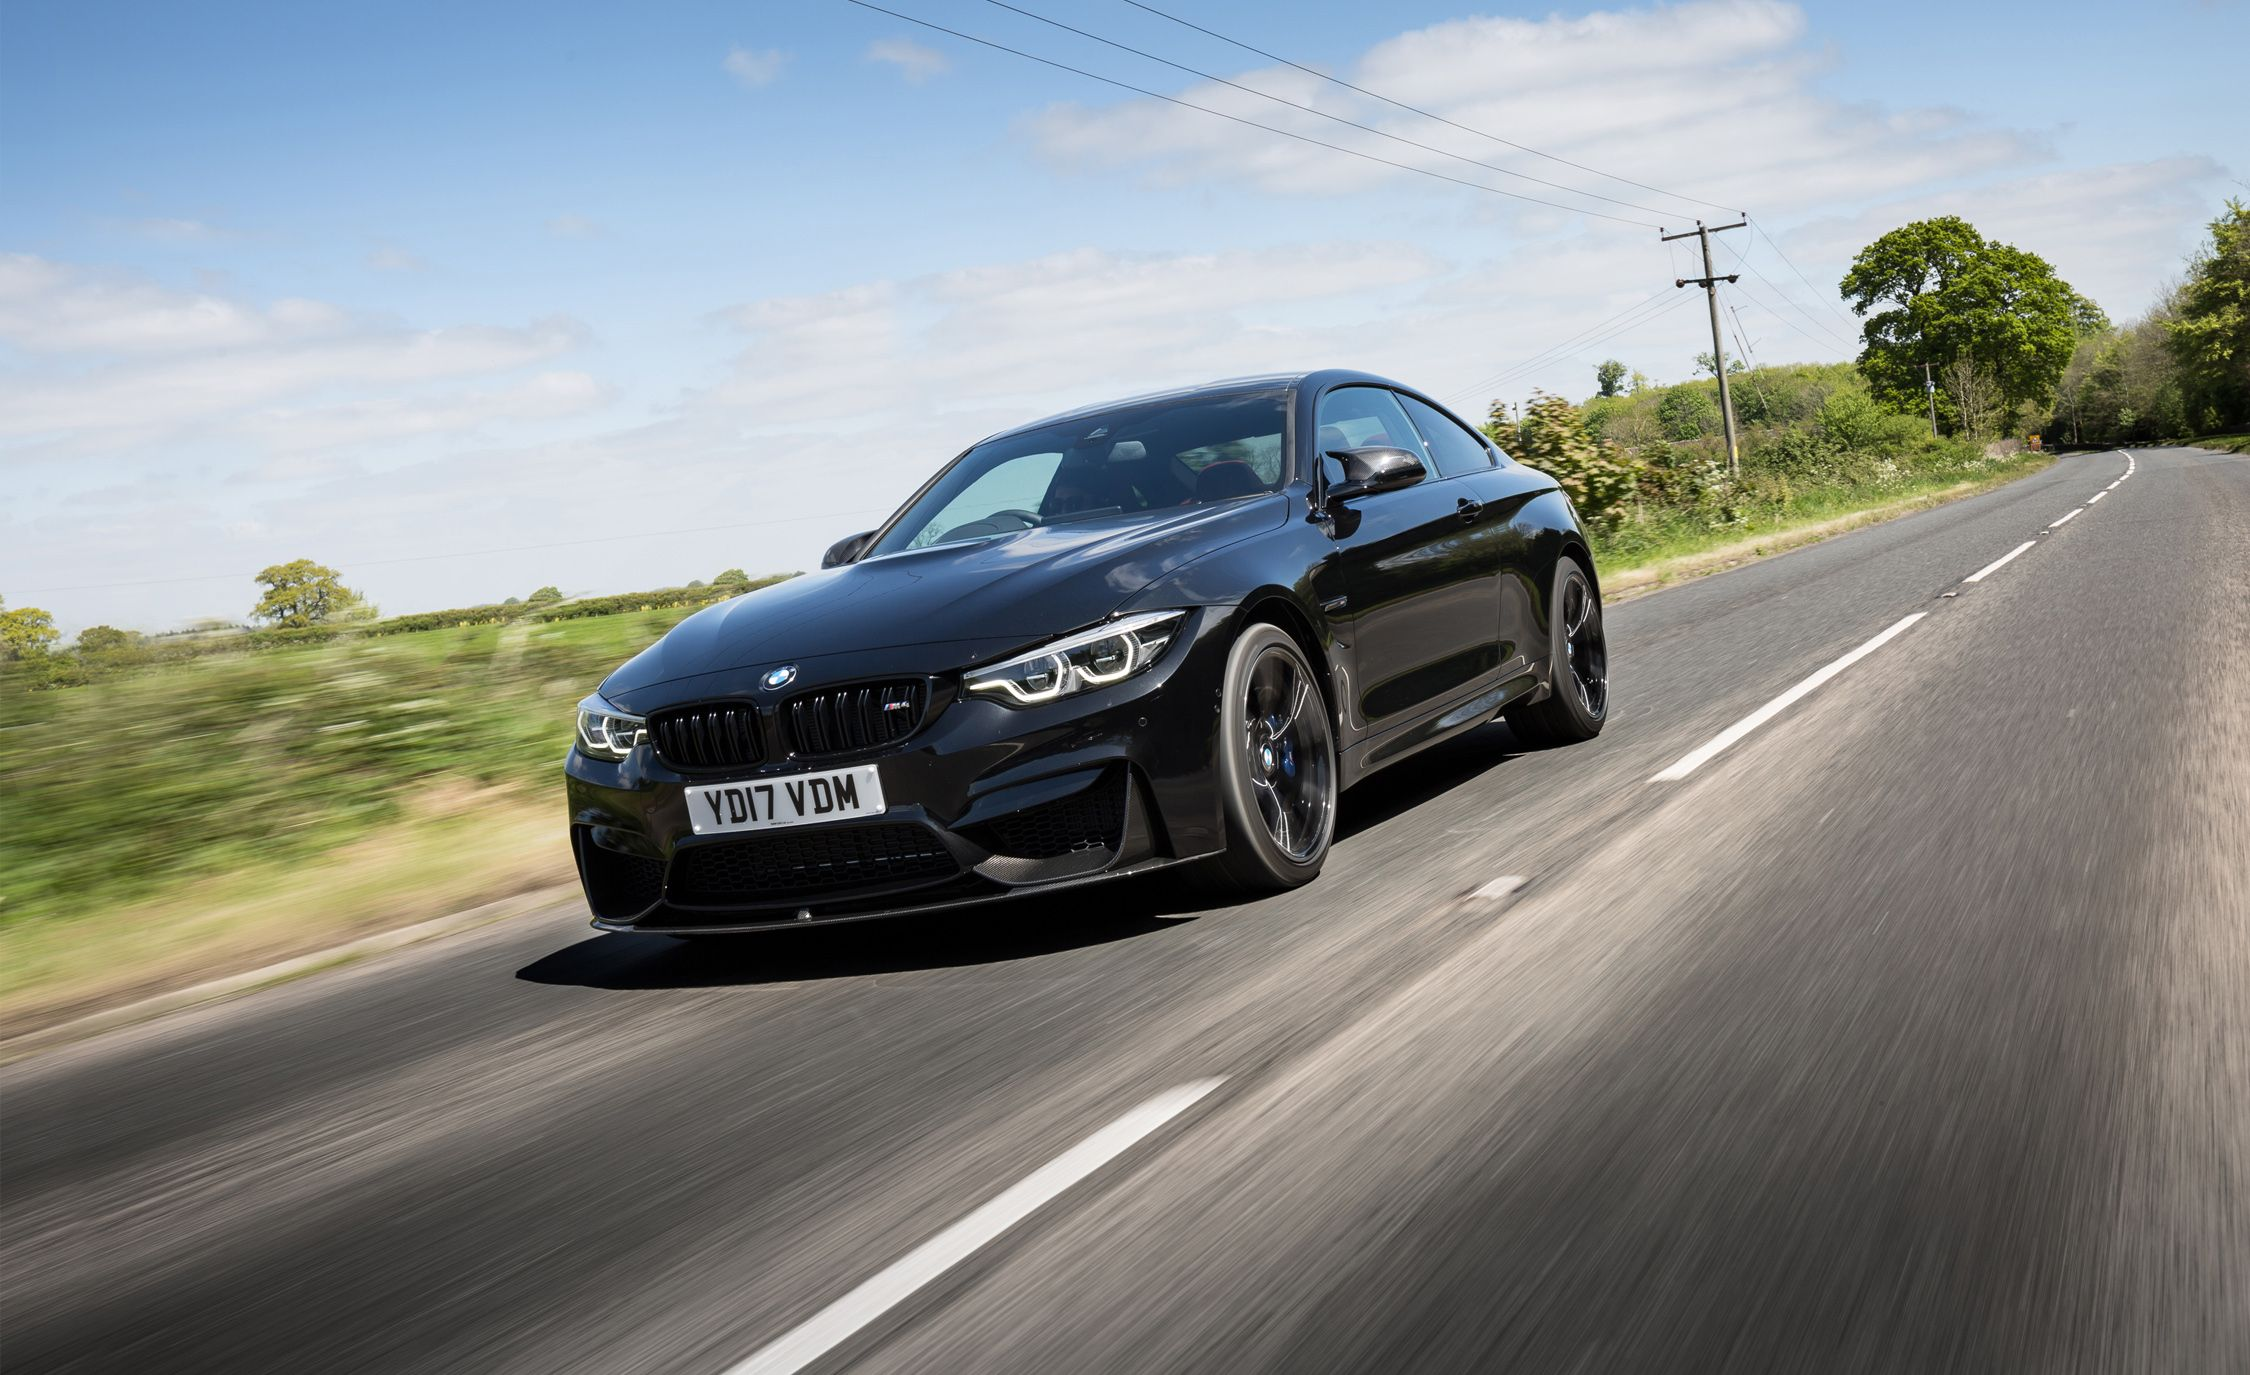 2018 Bmw M4 Driven Lights And Liveliness